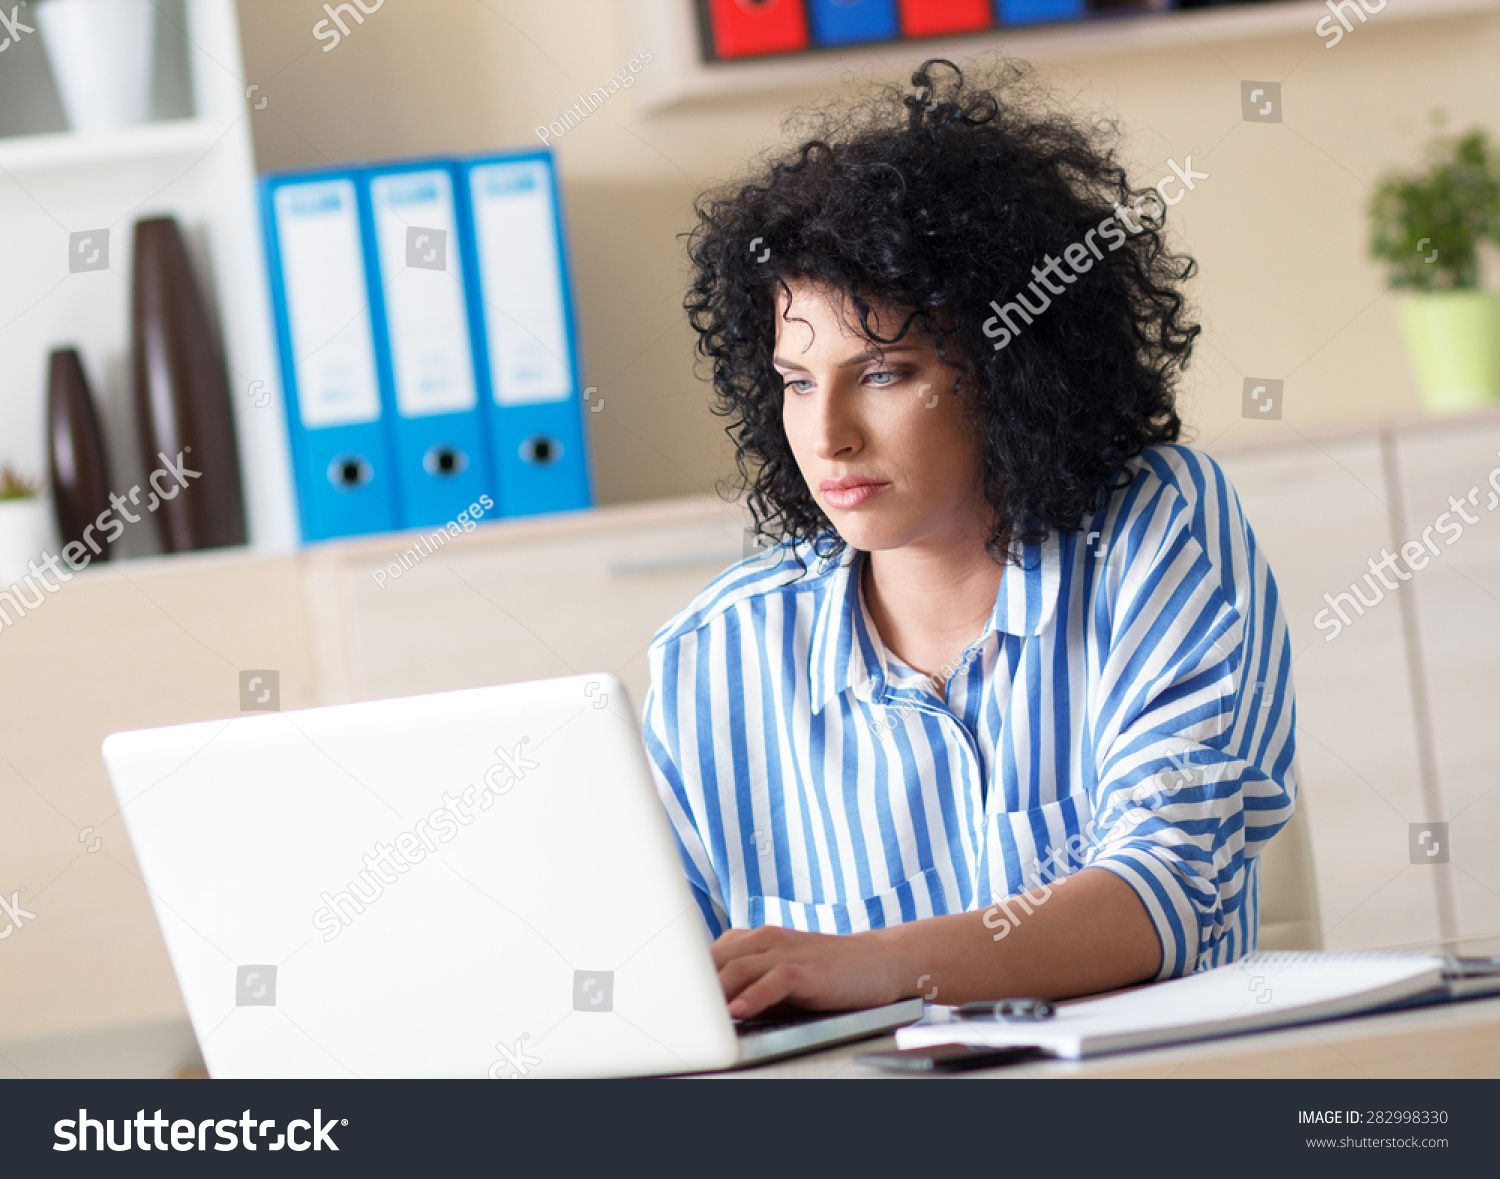 Attractive young female working in office, She typing on laptop #Ad , #Sponsored, #female#young#Attractive#working